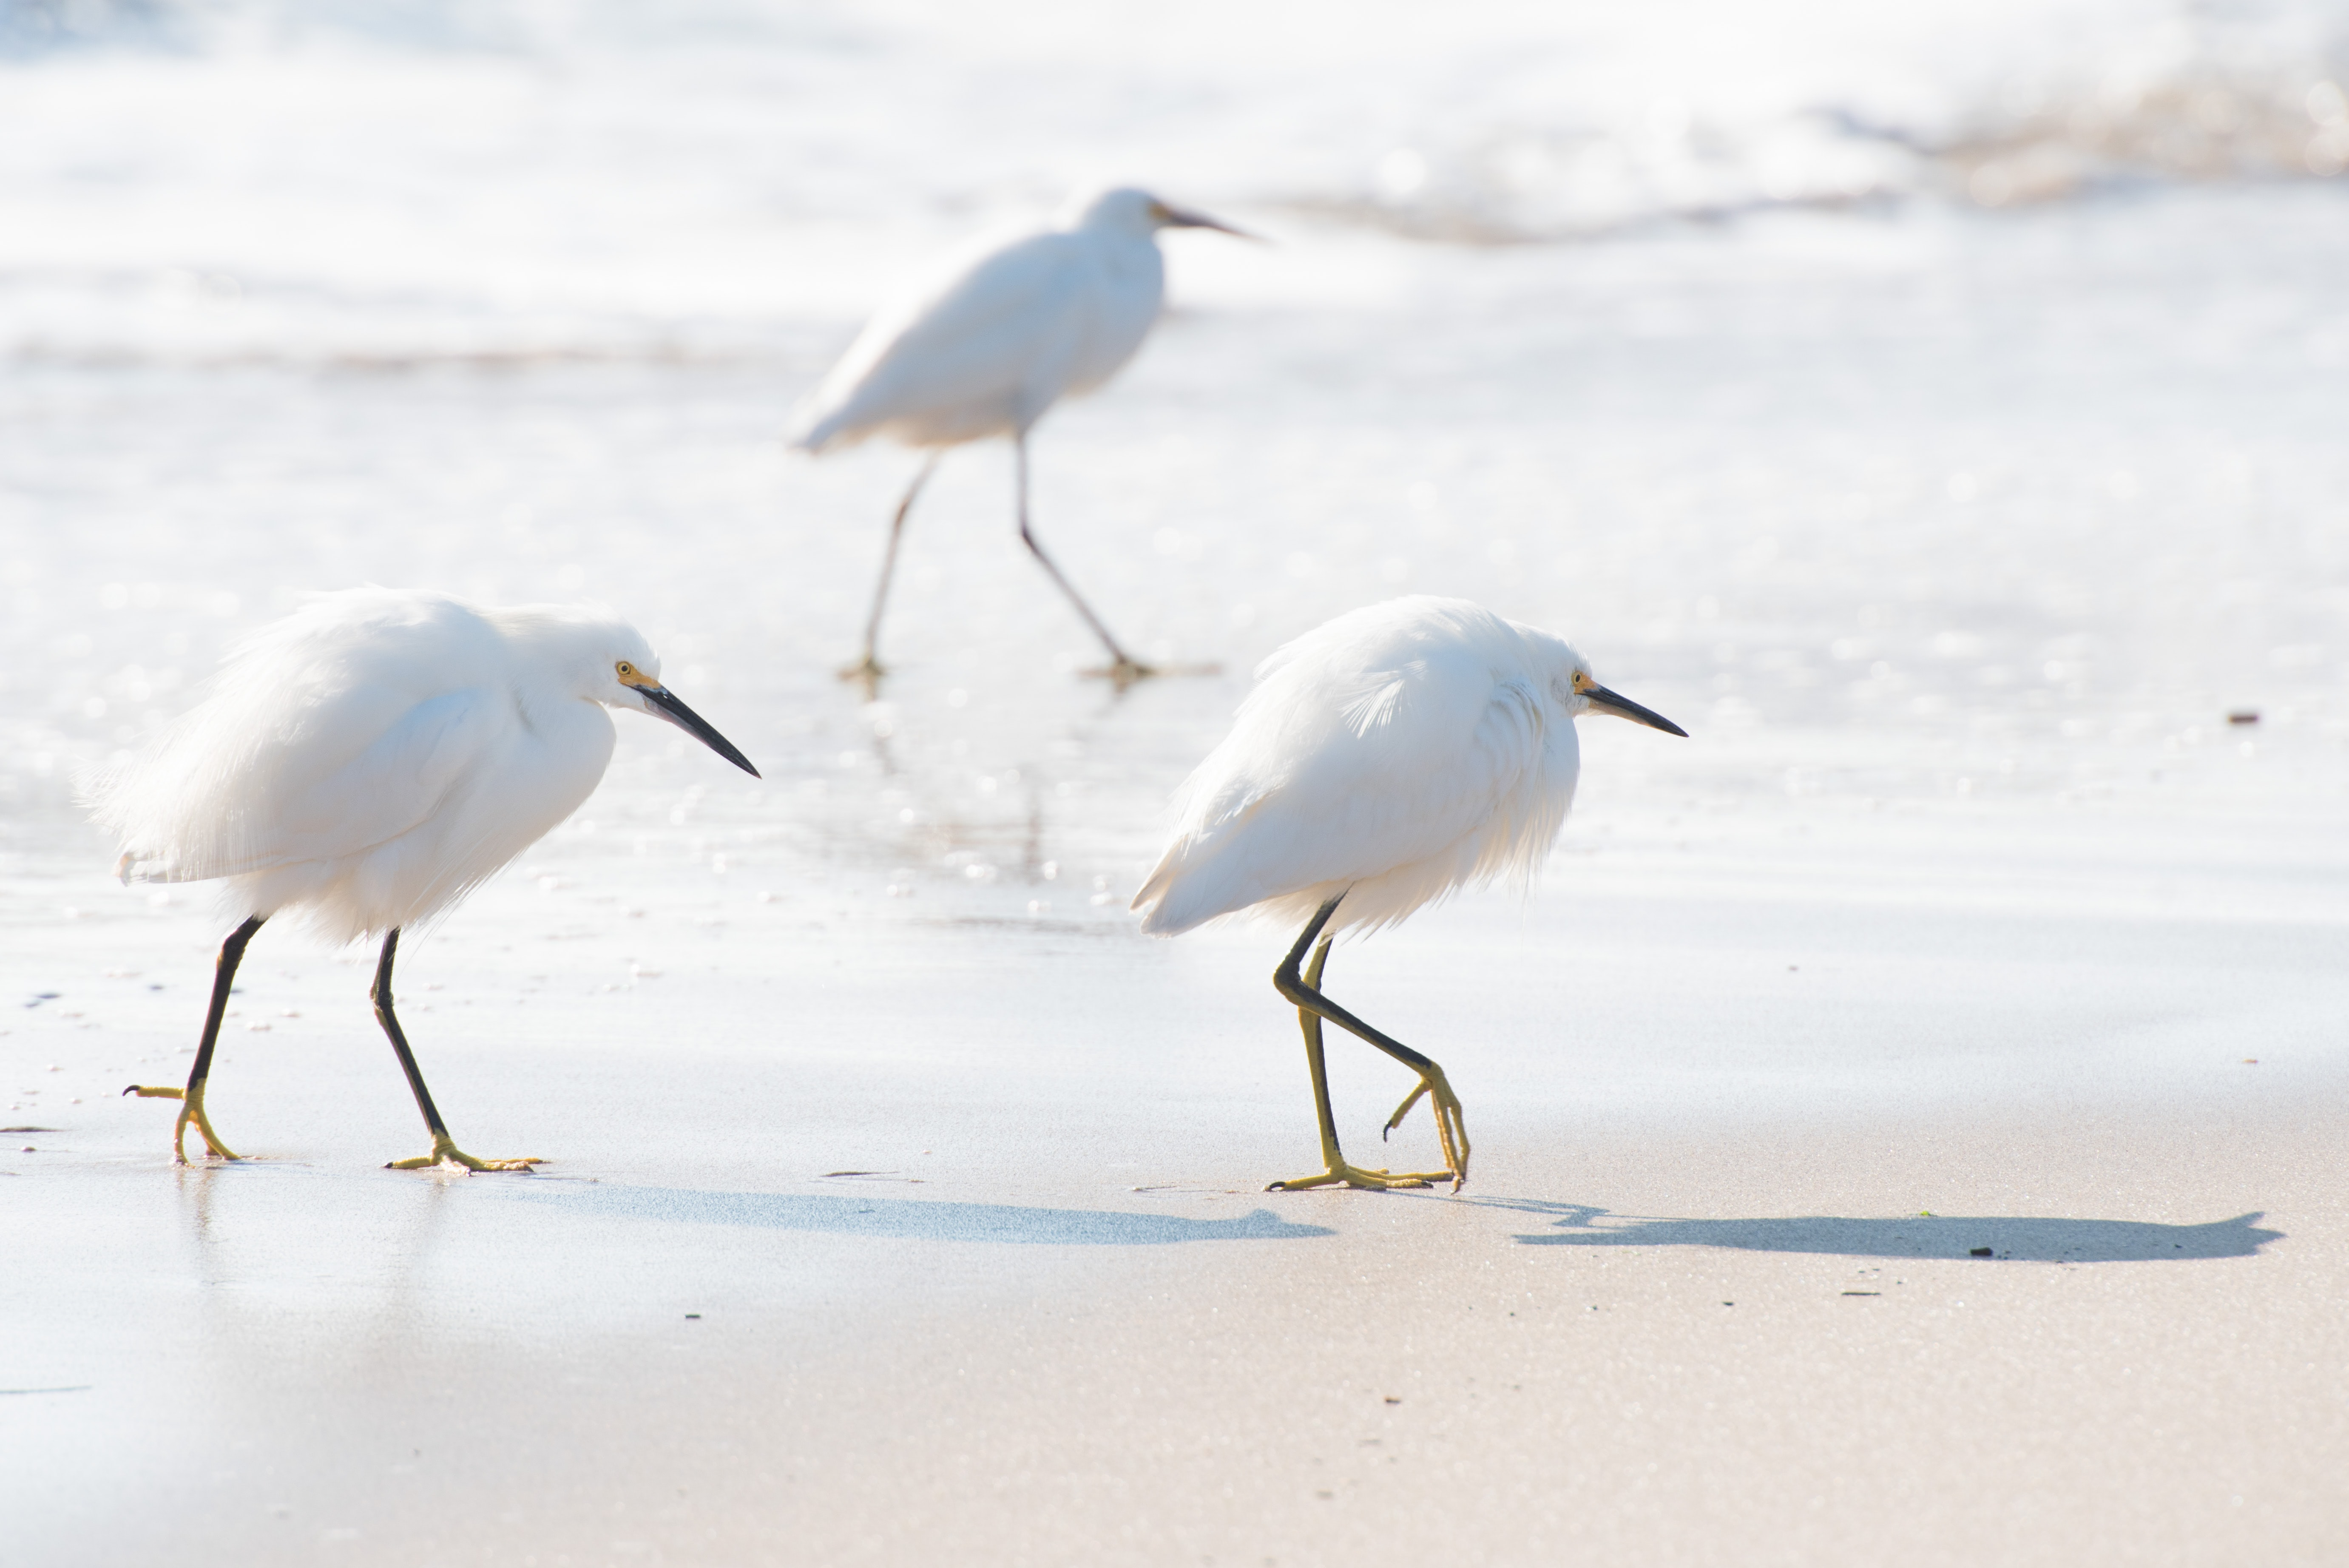 White snowy egrets walking on the sand beach